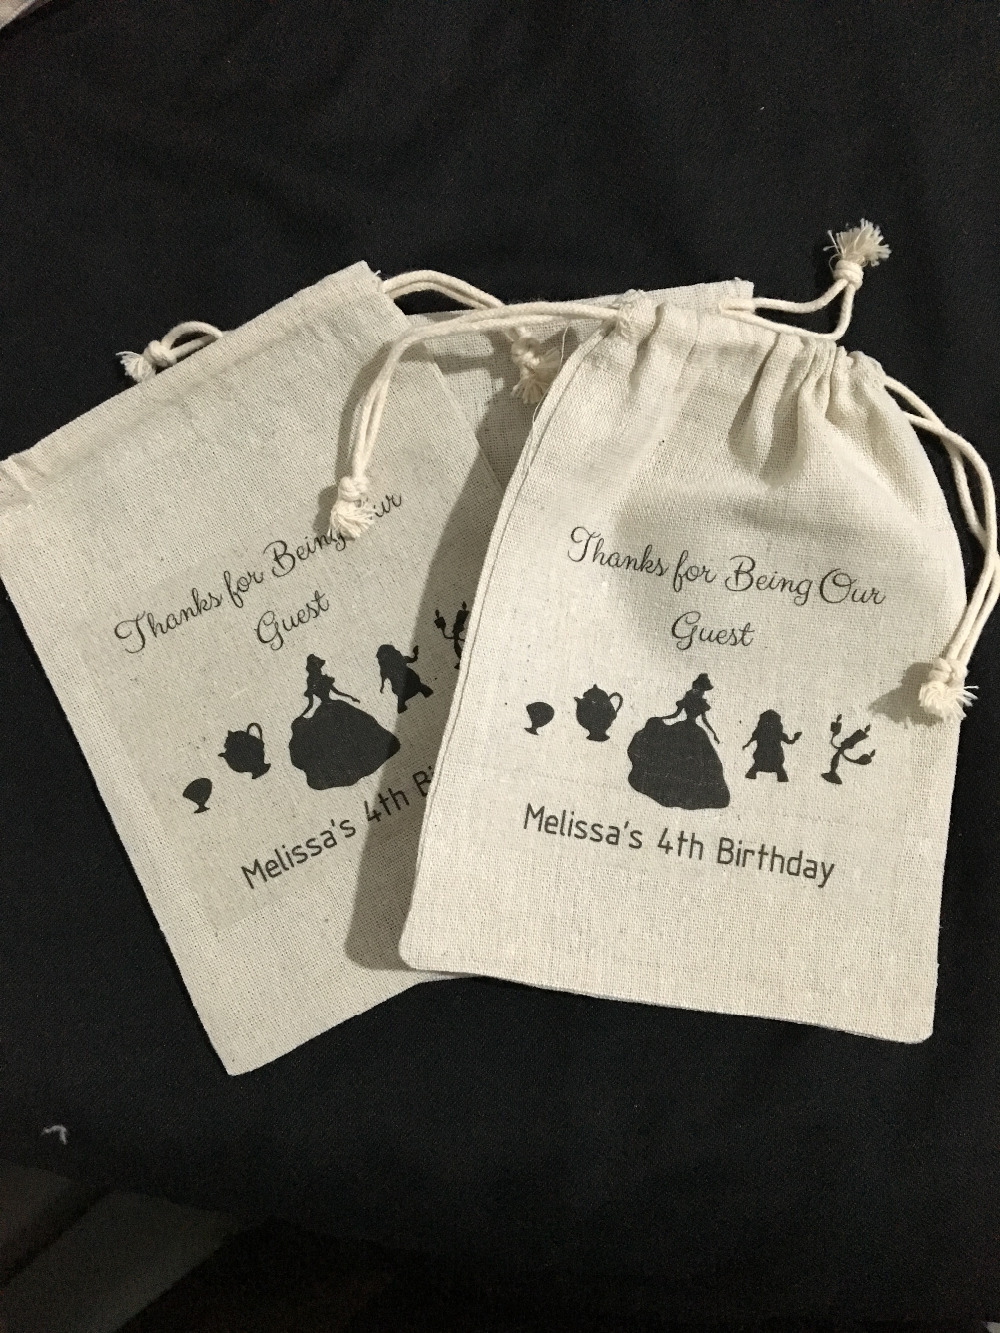 Personalized Beast And Beauty Wedding Birthday Jewelry Favor Muslin Gifts Bags Bachelorette Party First Aid Hangover Kits In Gift Wrapping Supplies